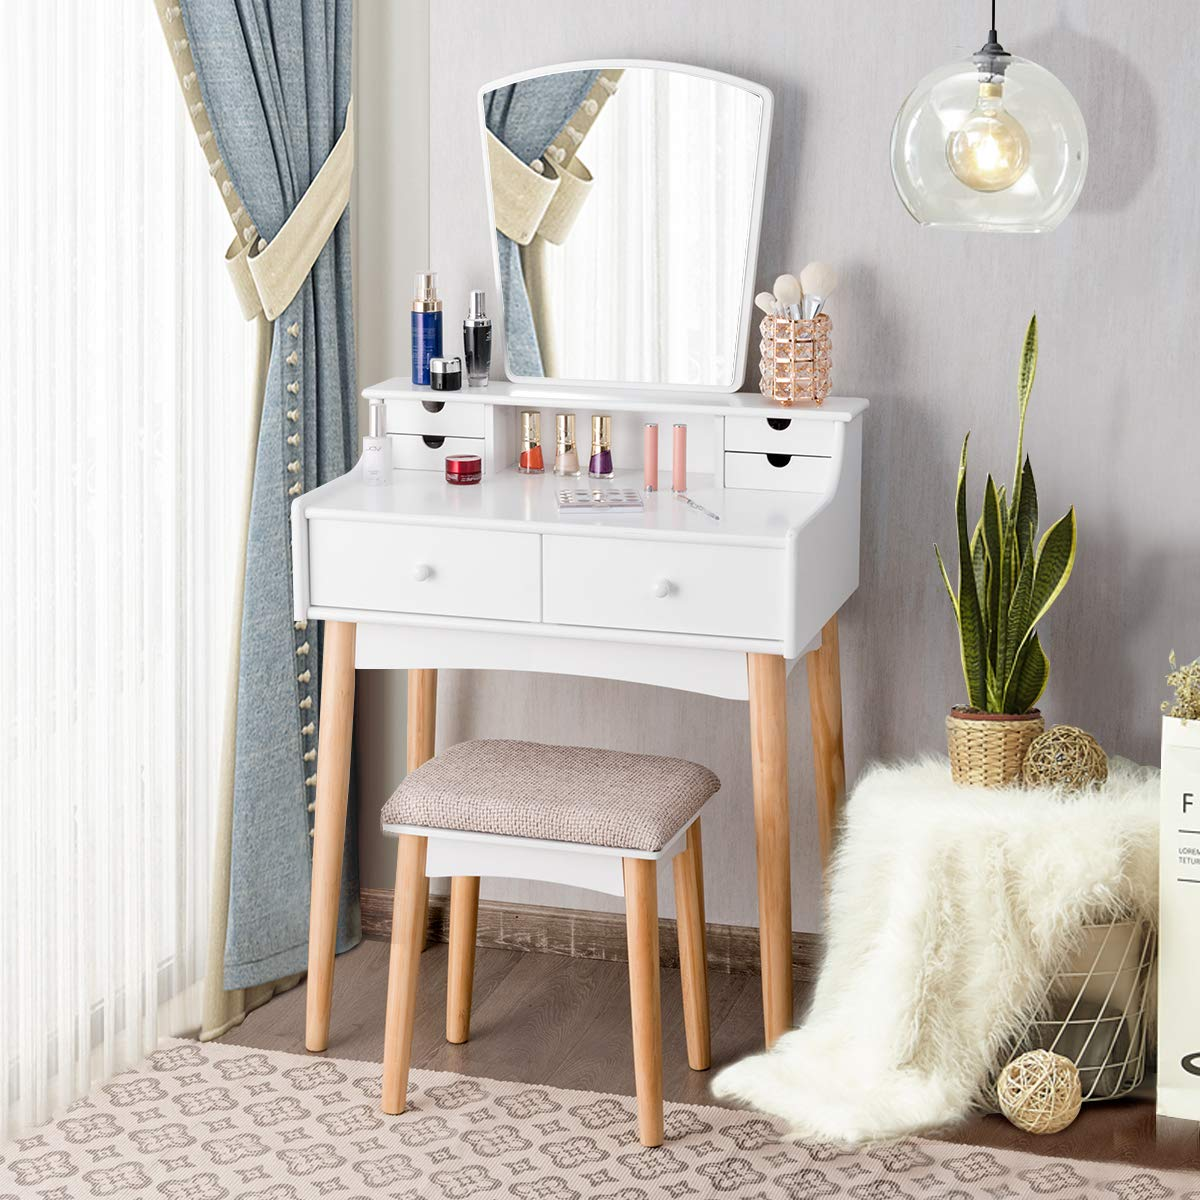 CHARMAID Small Dresser for small spaces